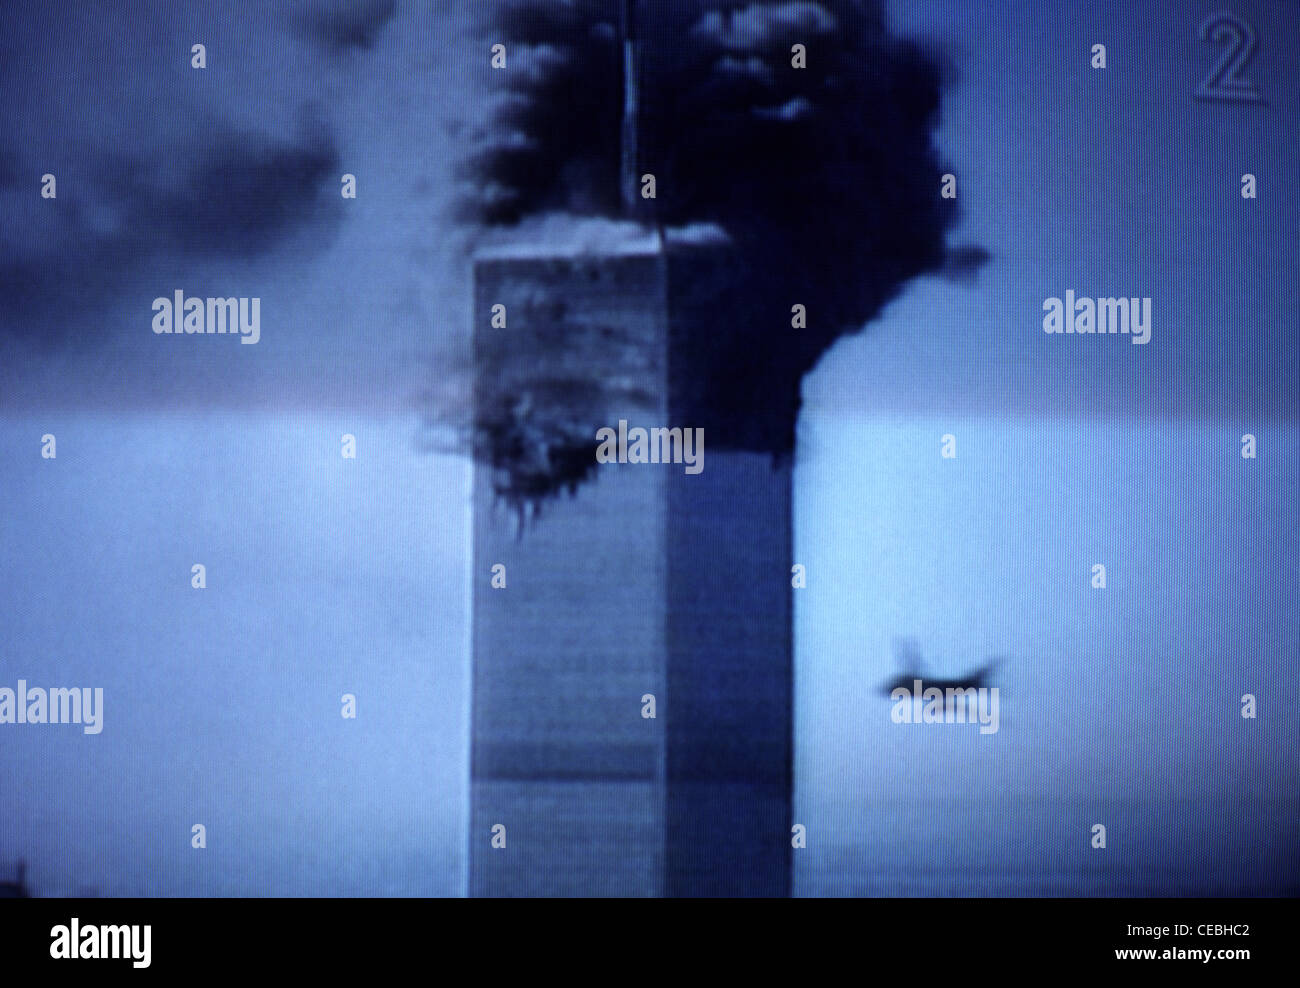 A screen shot of television's live coverage of events unfolding in New York during 9/11 - Stock Image